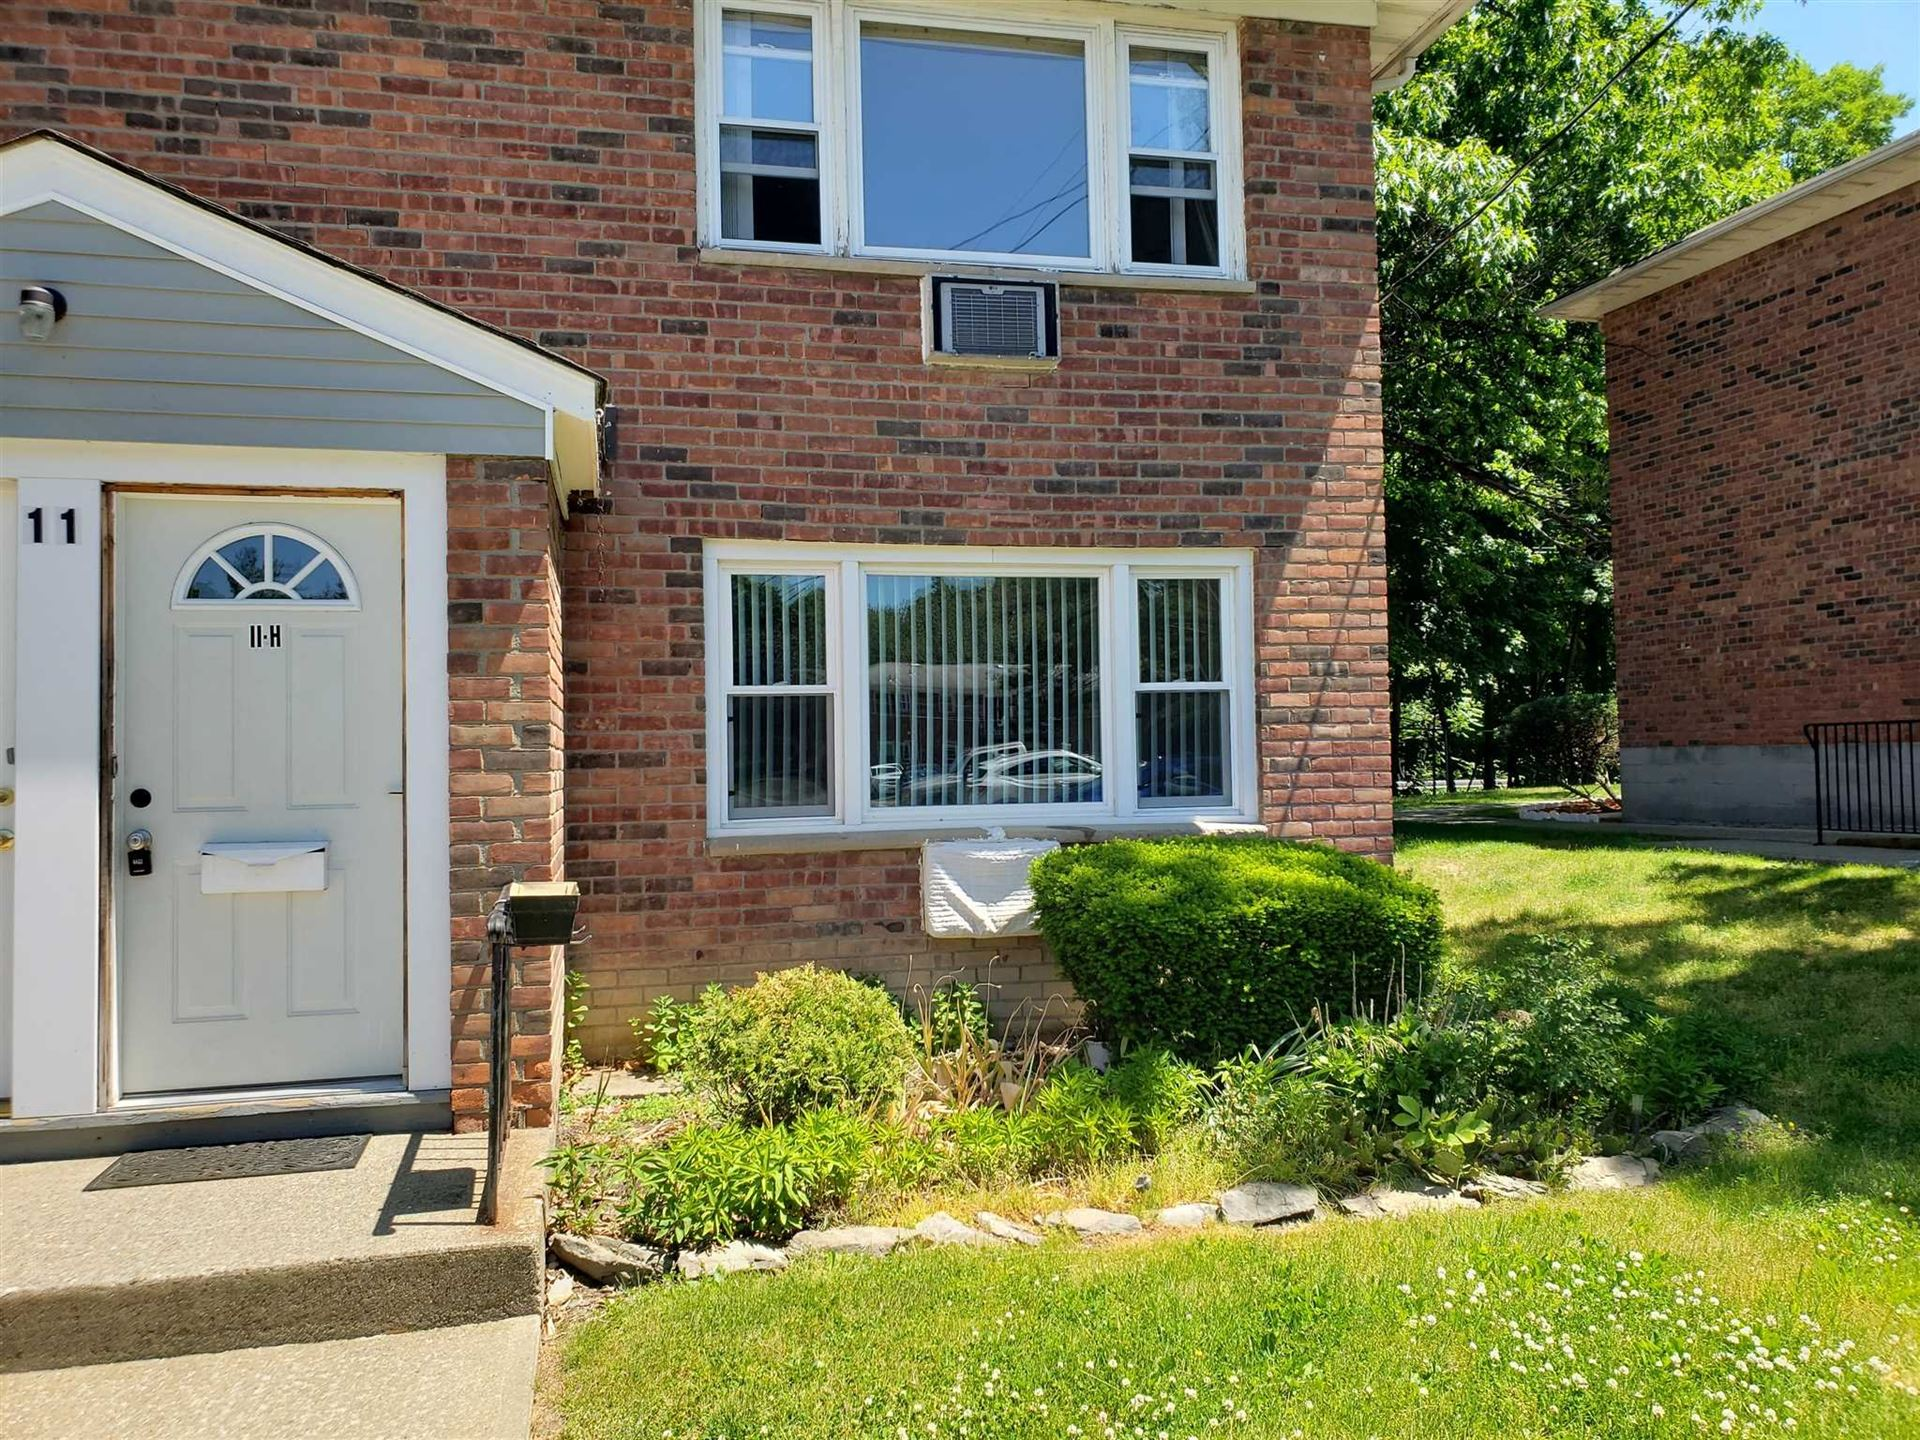 1668 ROUTE 9 UNIT 11H, Wappingers Falls, NY 12590 - #: 400799